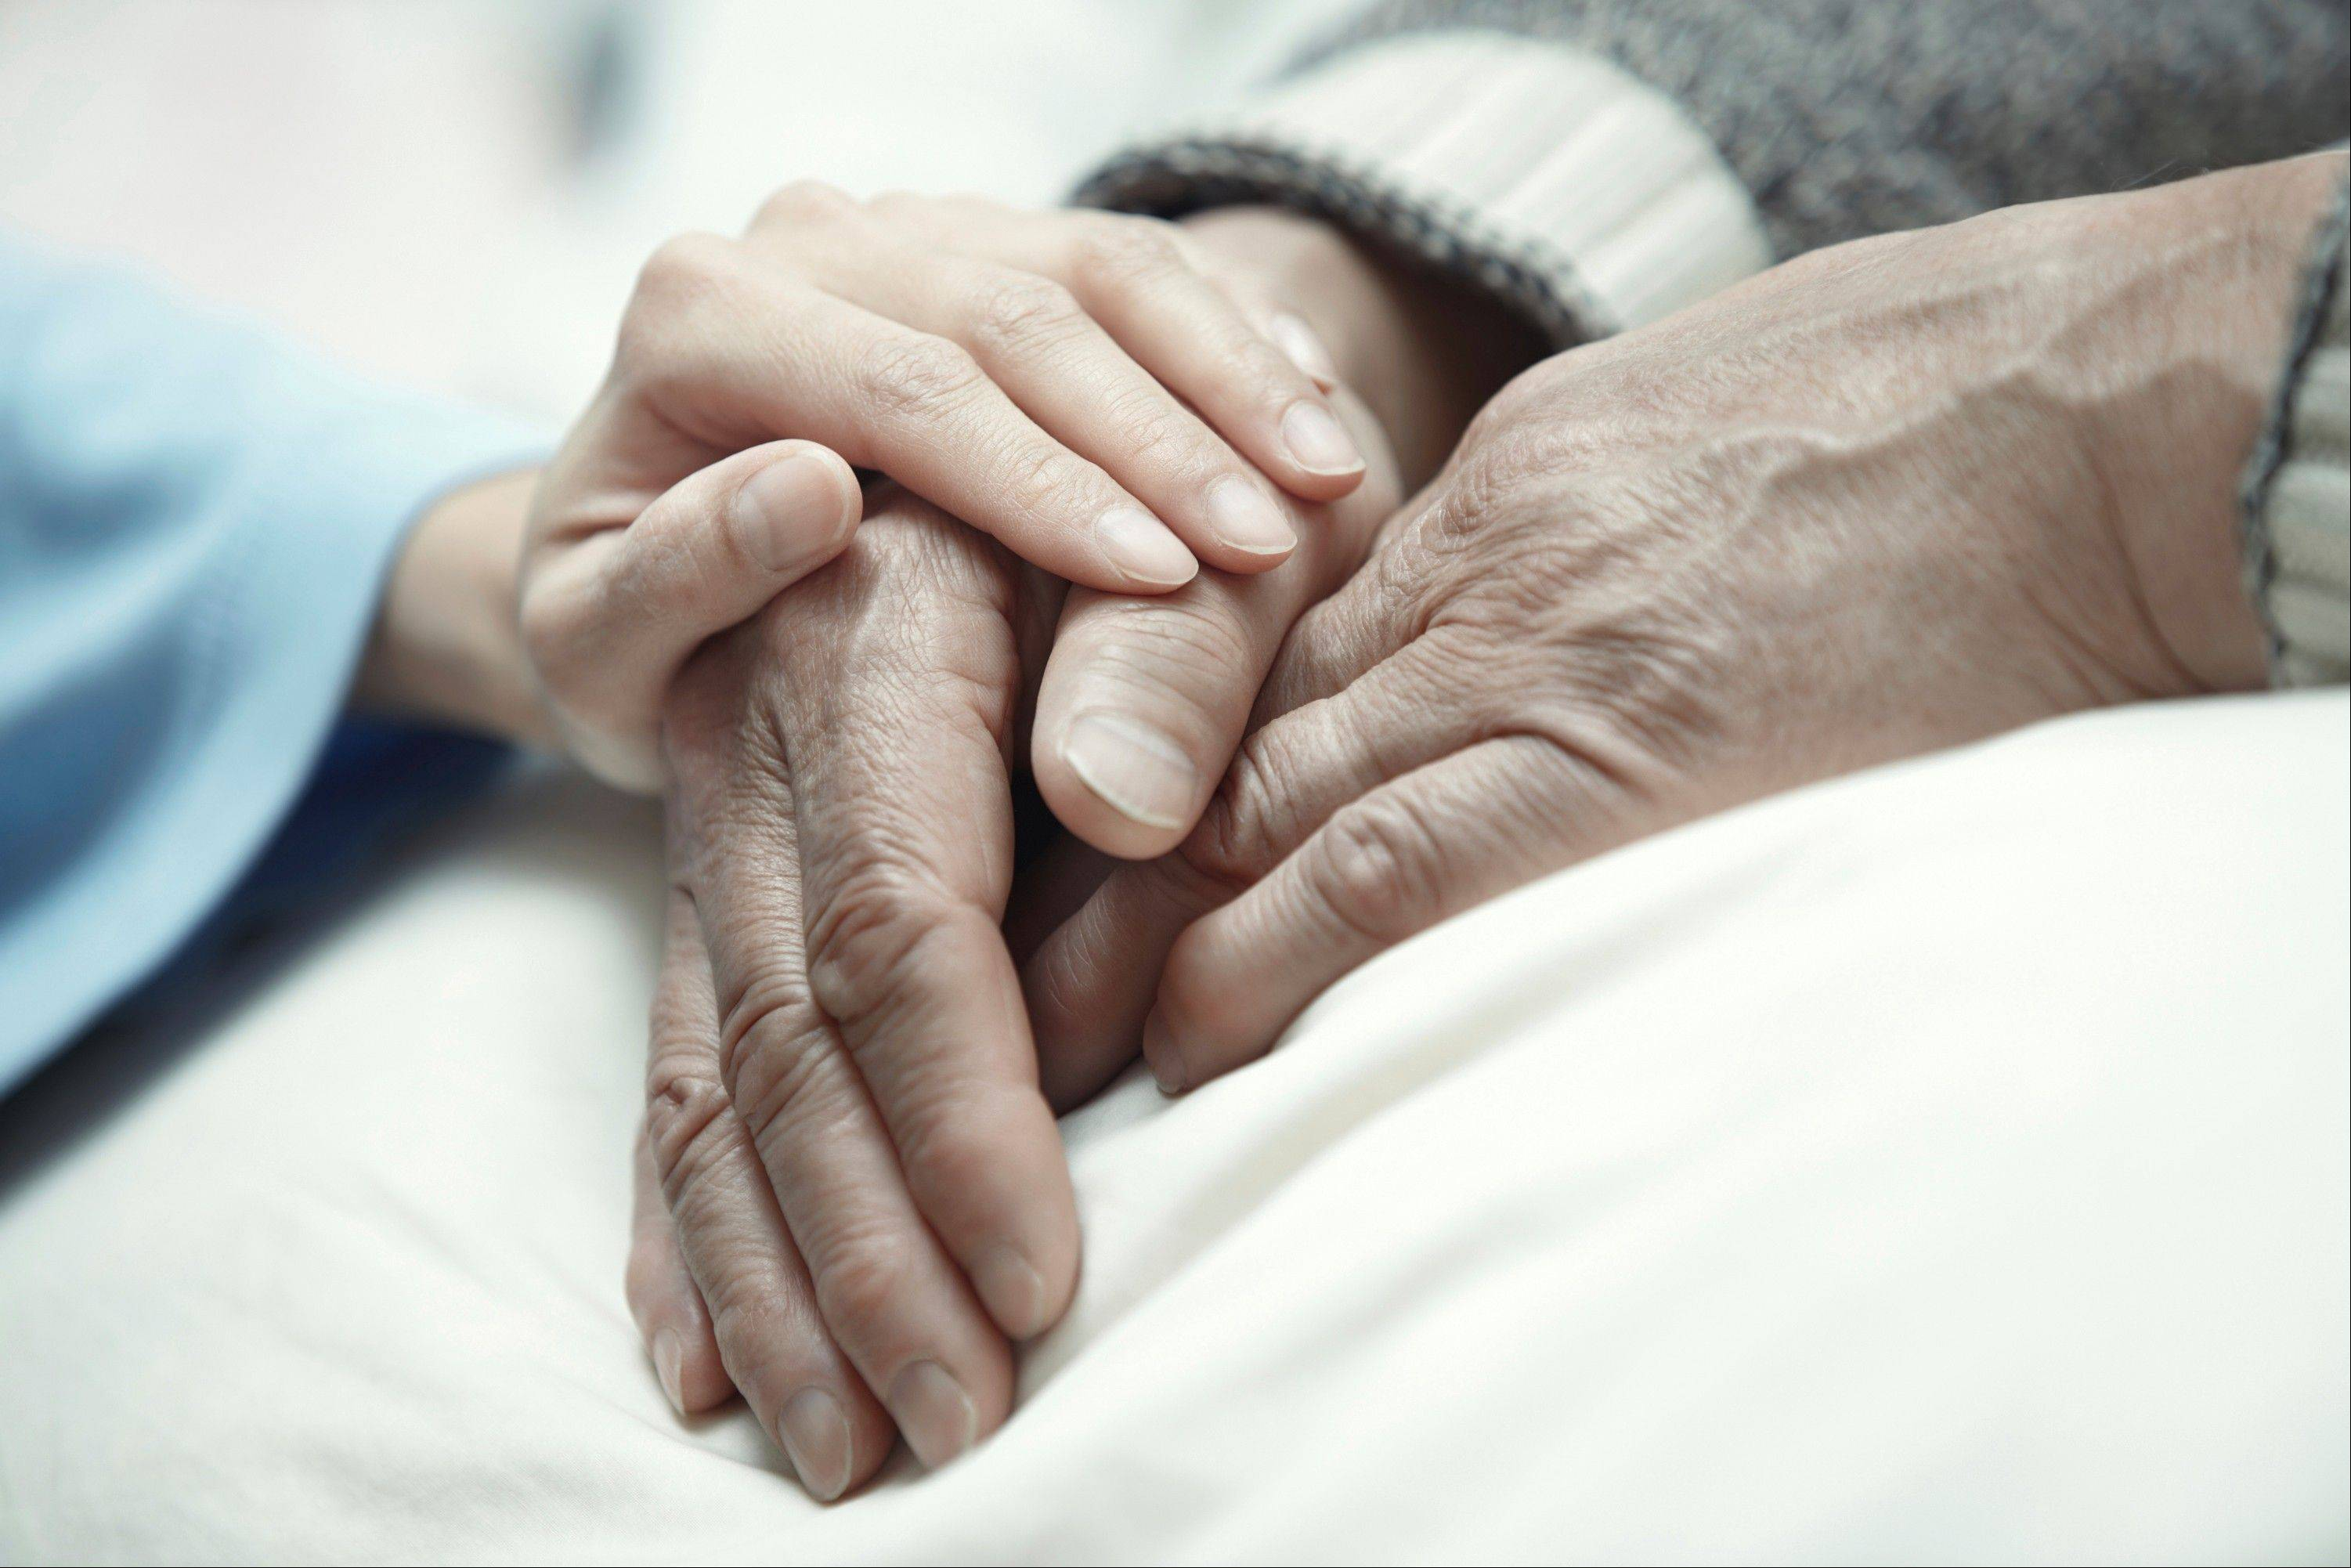 Nursing homes and other long-term care facilities are widely unprepared to deal with sex among expanding populations of residents with dementia, partly because administrators, staff and families are reluctant to discuss or even acknowledge elderly sexuality, the AMDA has concluded.